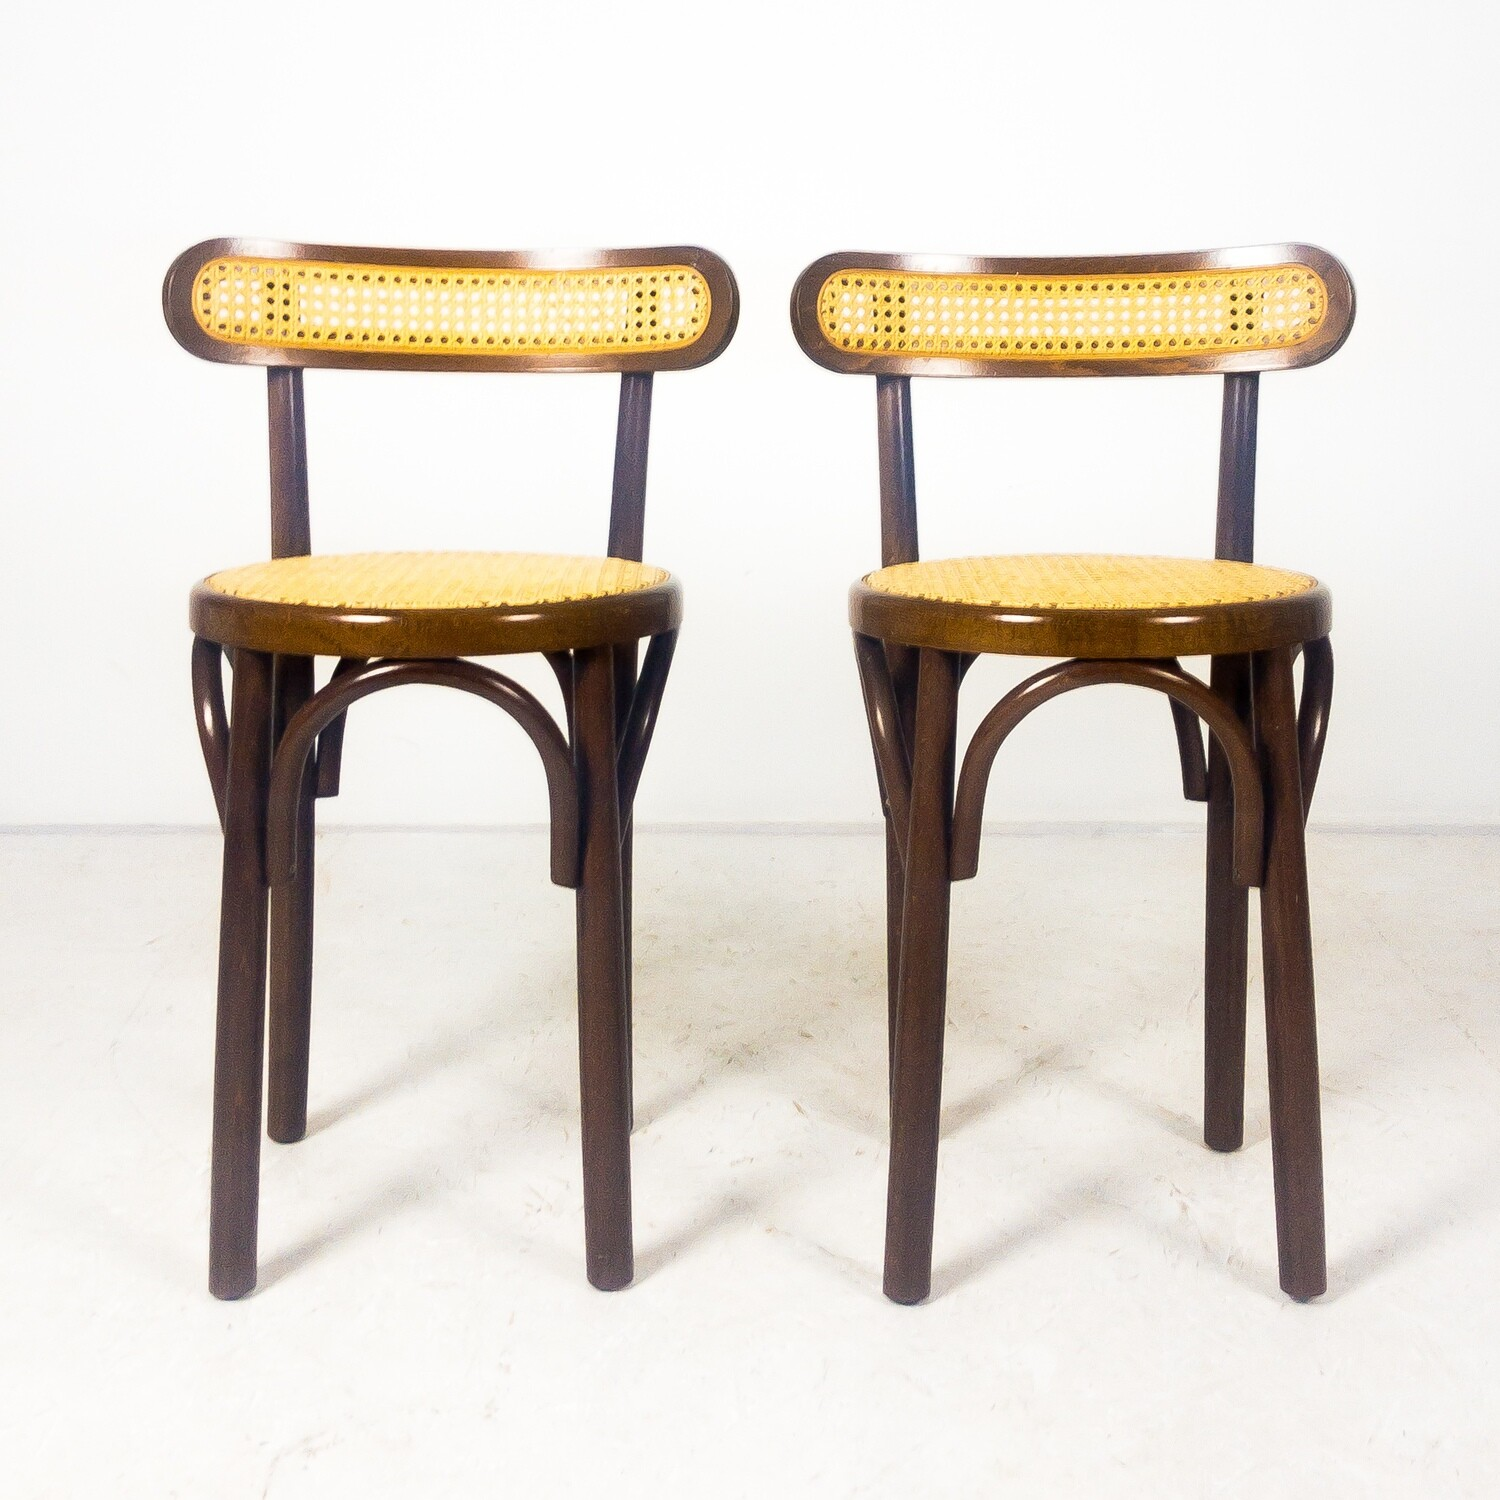 Set of two Thonet style chairs in wood and Vienna straw